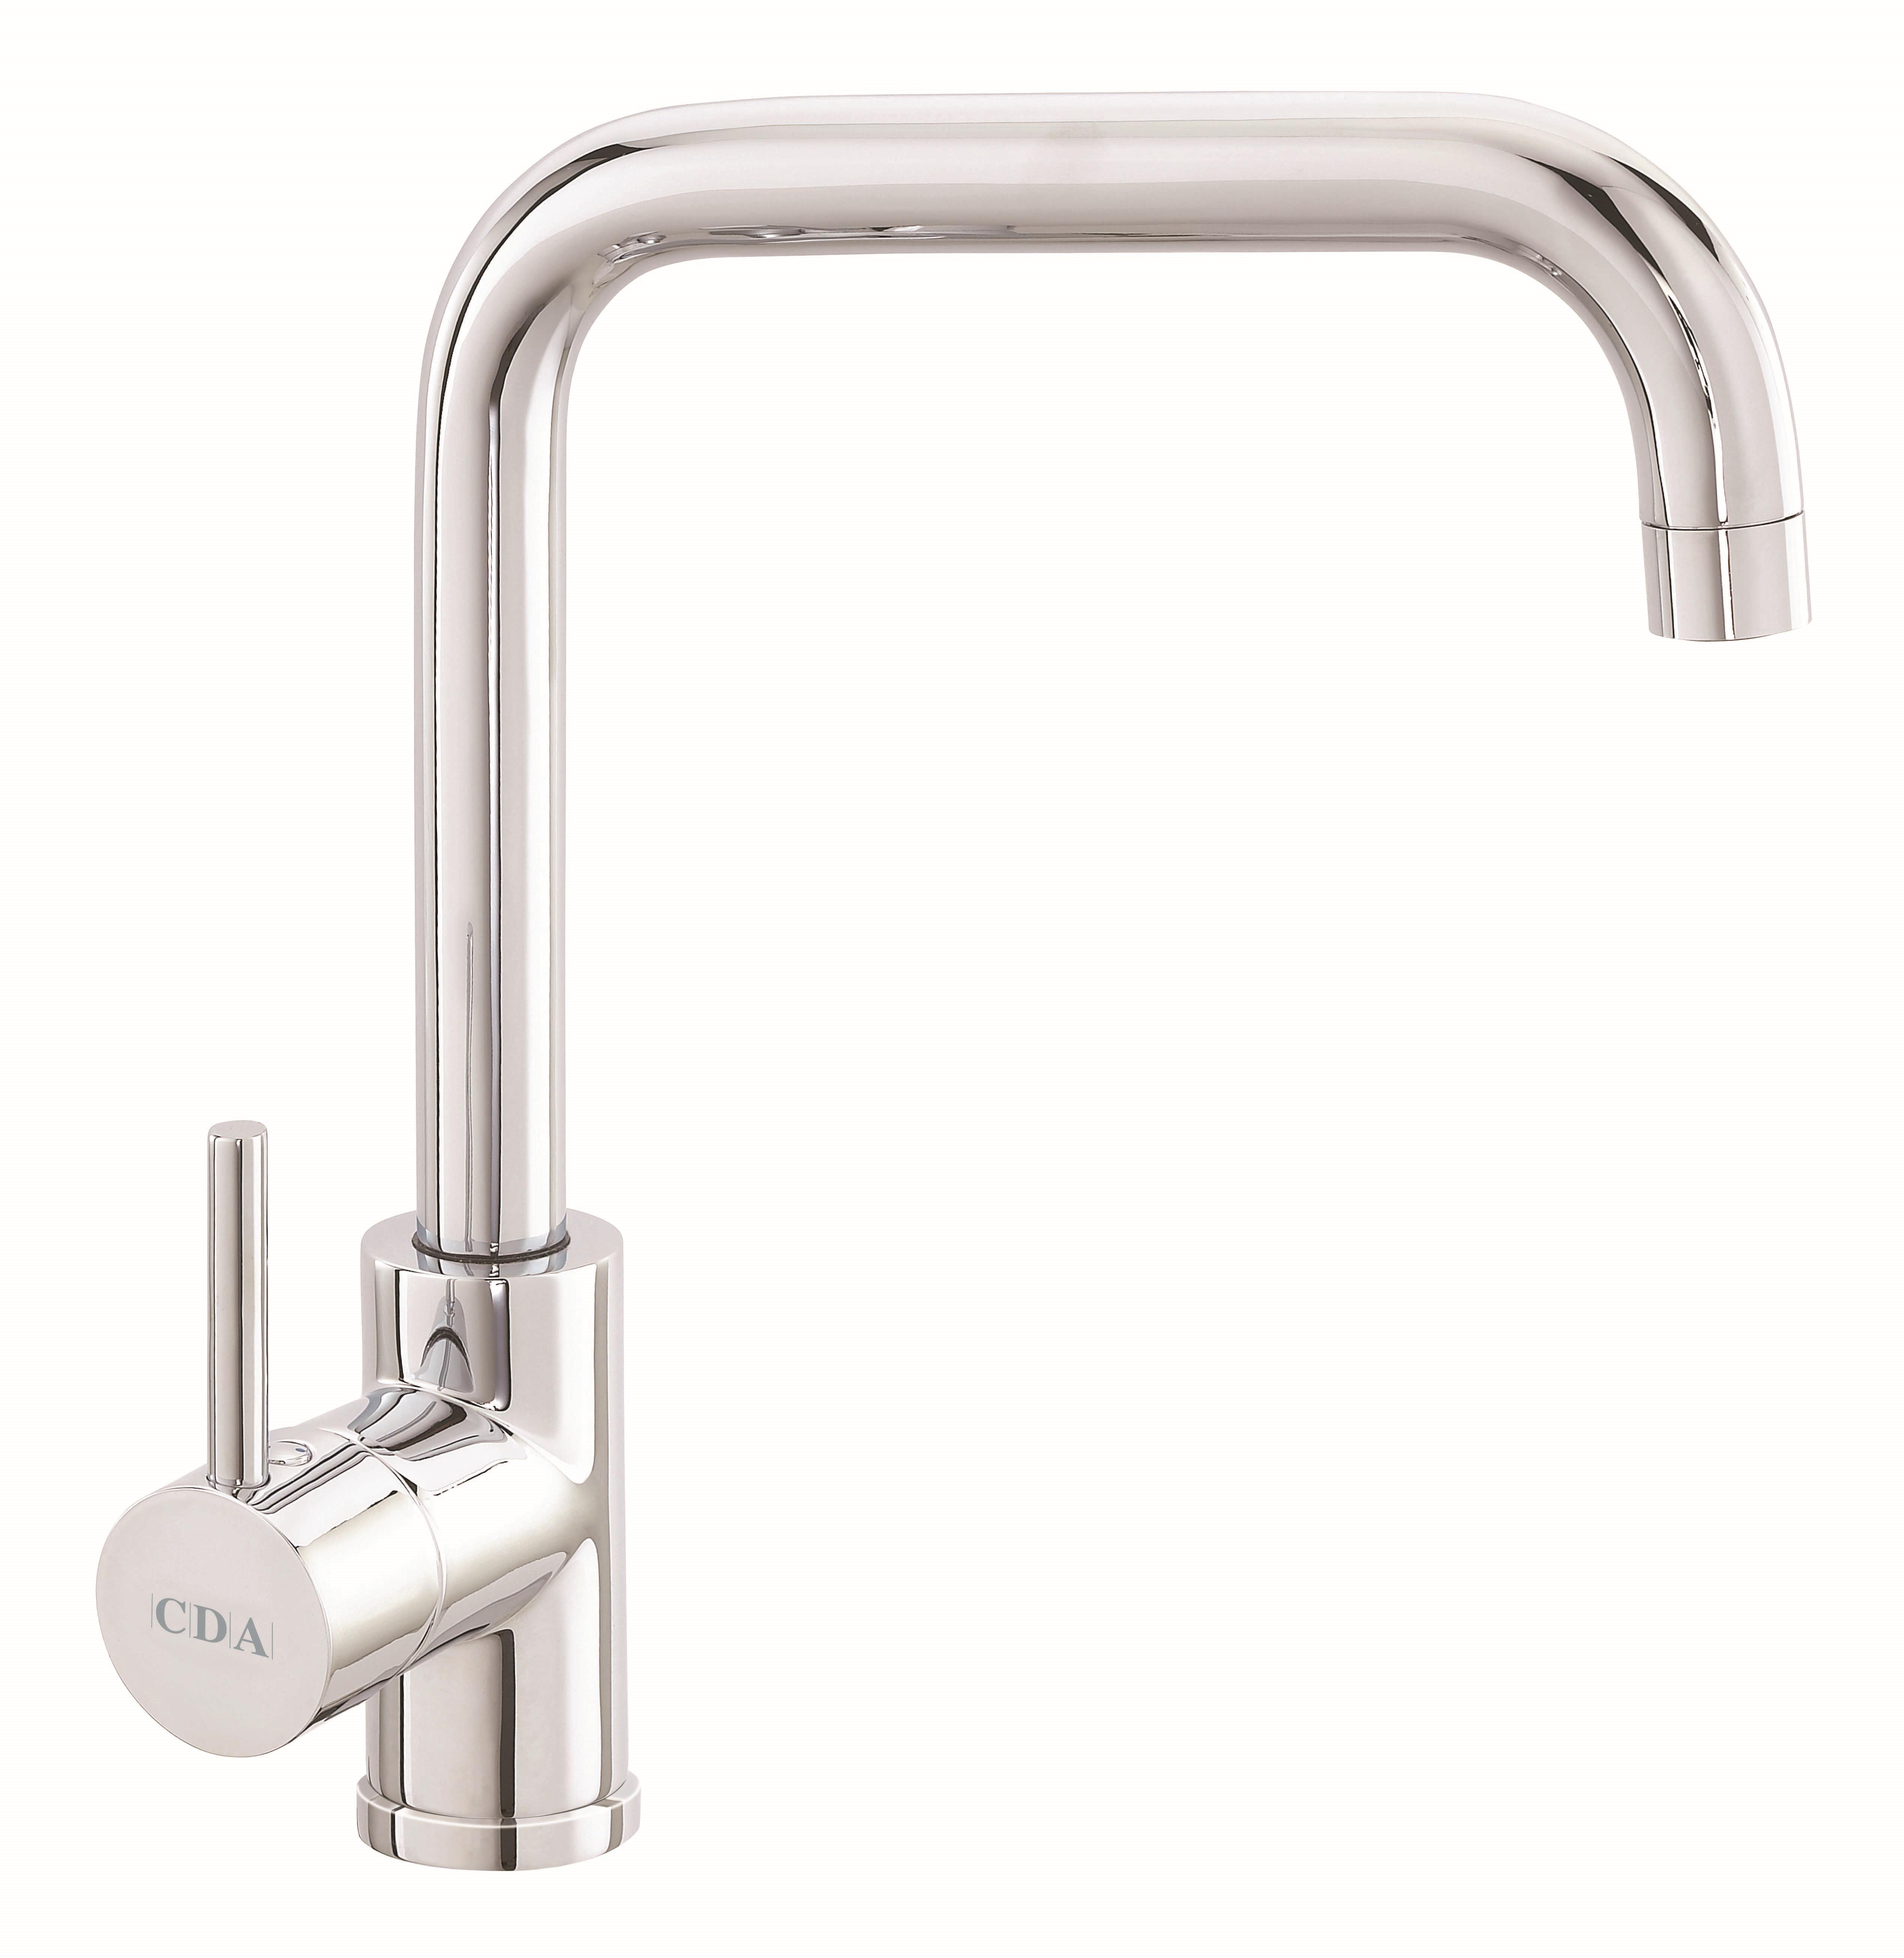 Cda perpignan side single lever bodel your must login with your trade account to purchase from this website ccuart Choice Image